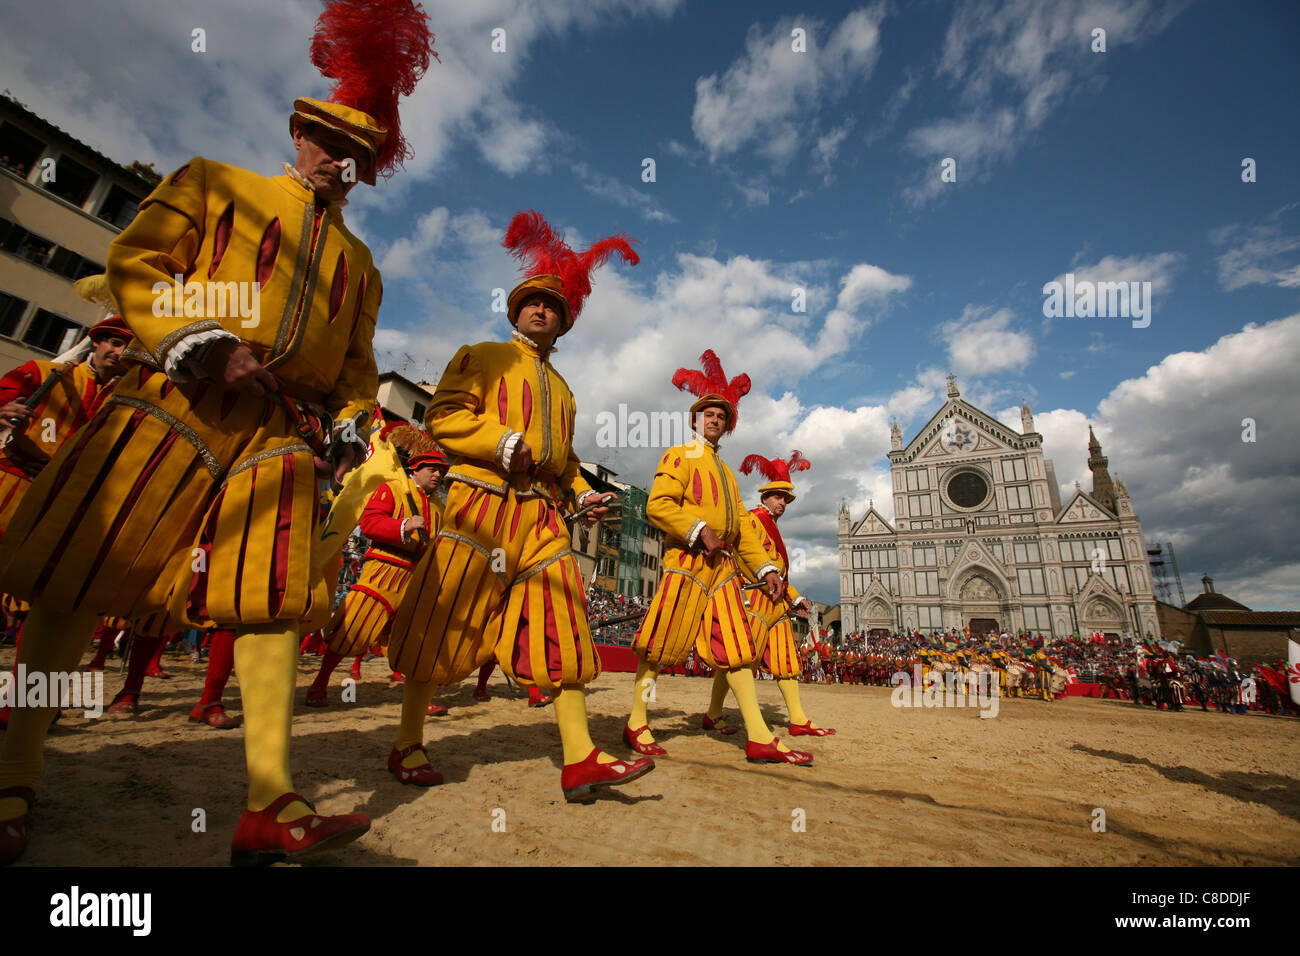 Calcio Storico. Opening ceremony of the final match in historical football at the Piazza di Santa Croce in Florence, Stock Photo